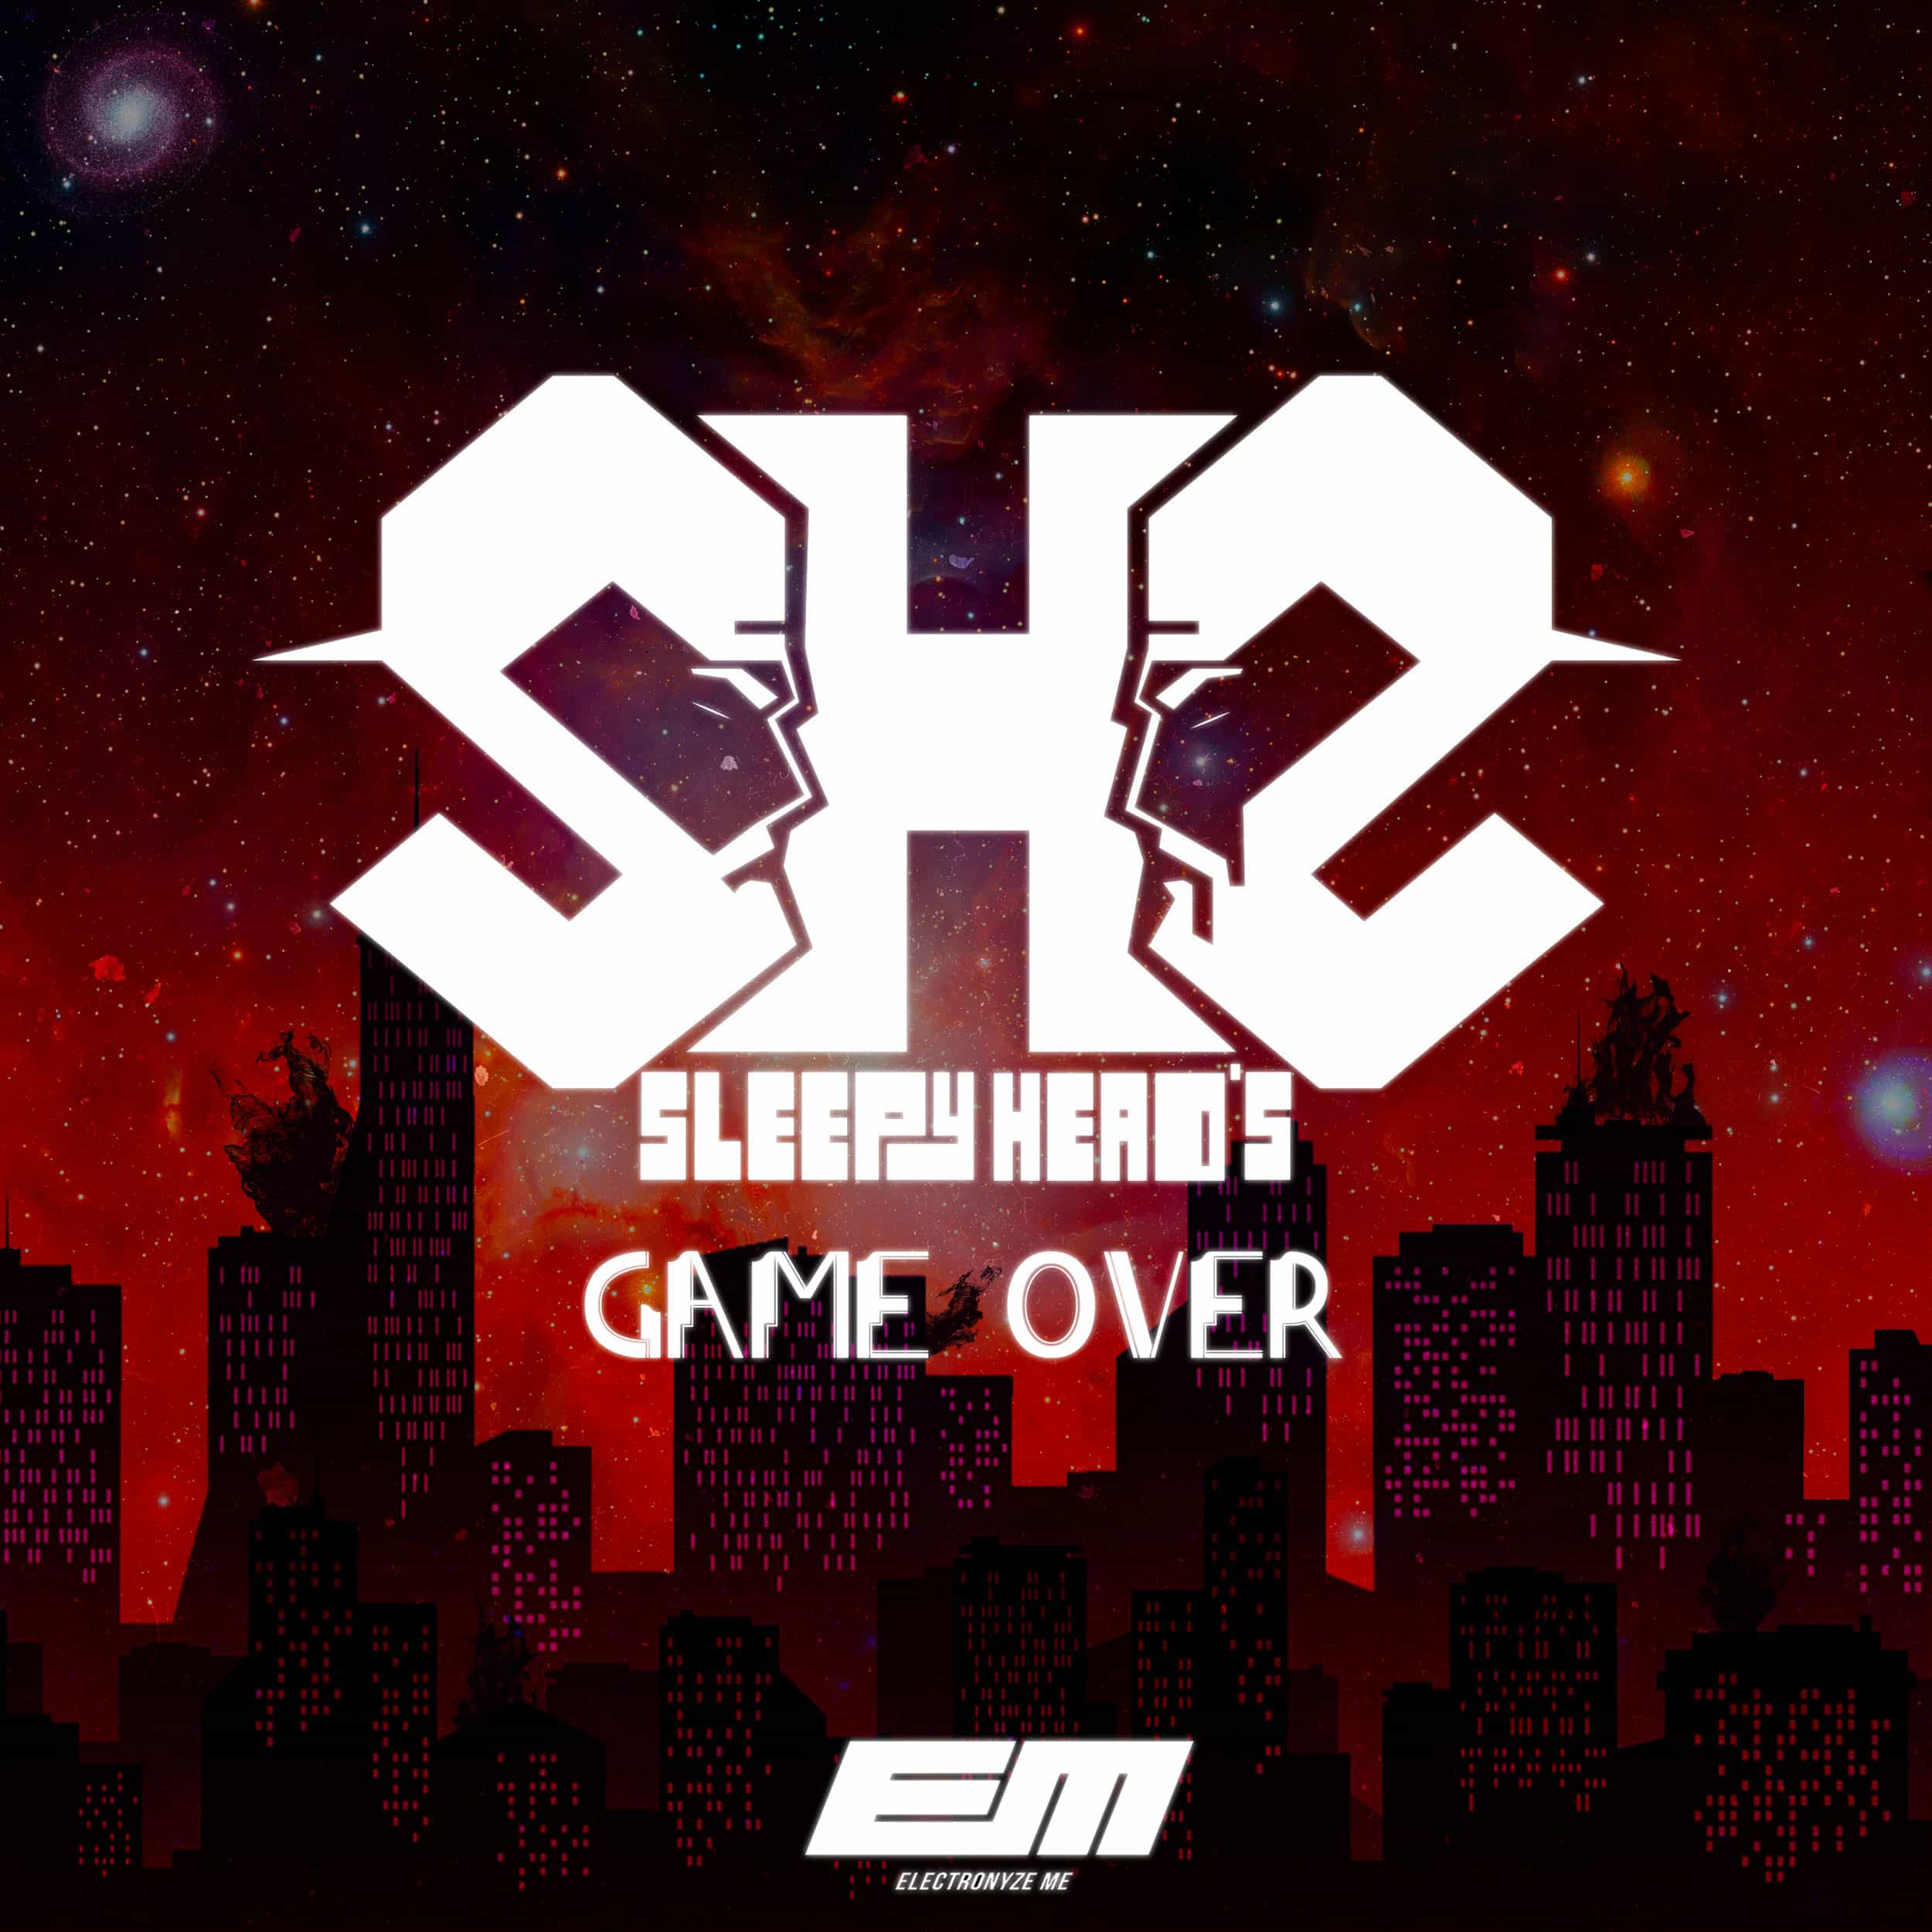 gameover sh 3000x3000 j low